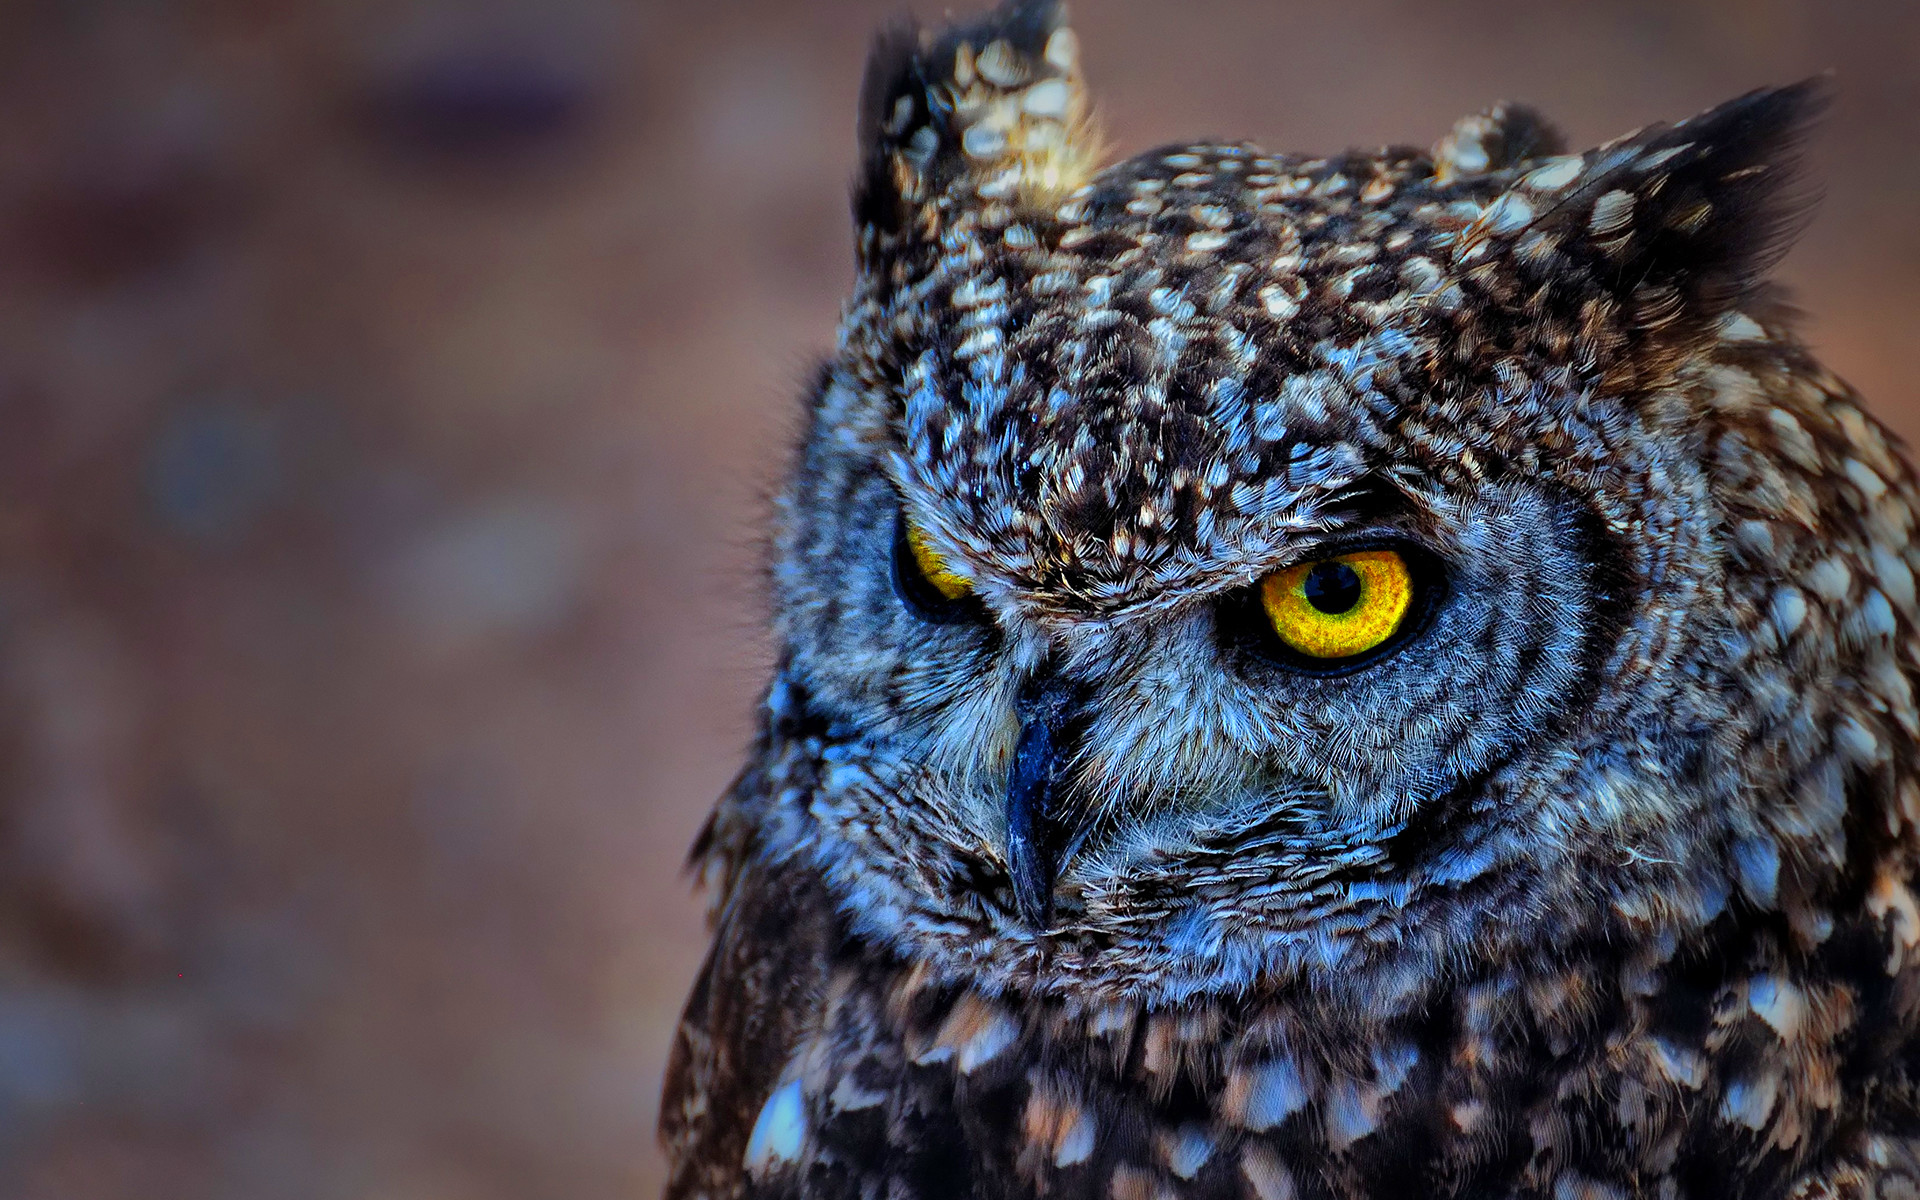 EAGLE OWL WALLPAPERS FREE Wallpapers & Background images .